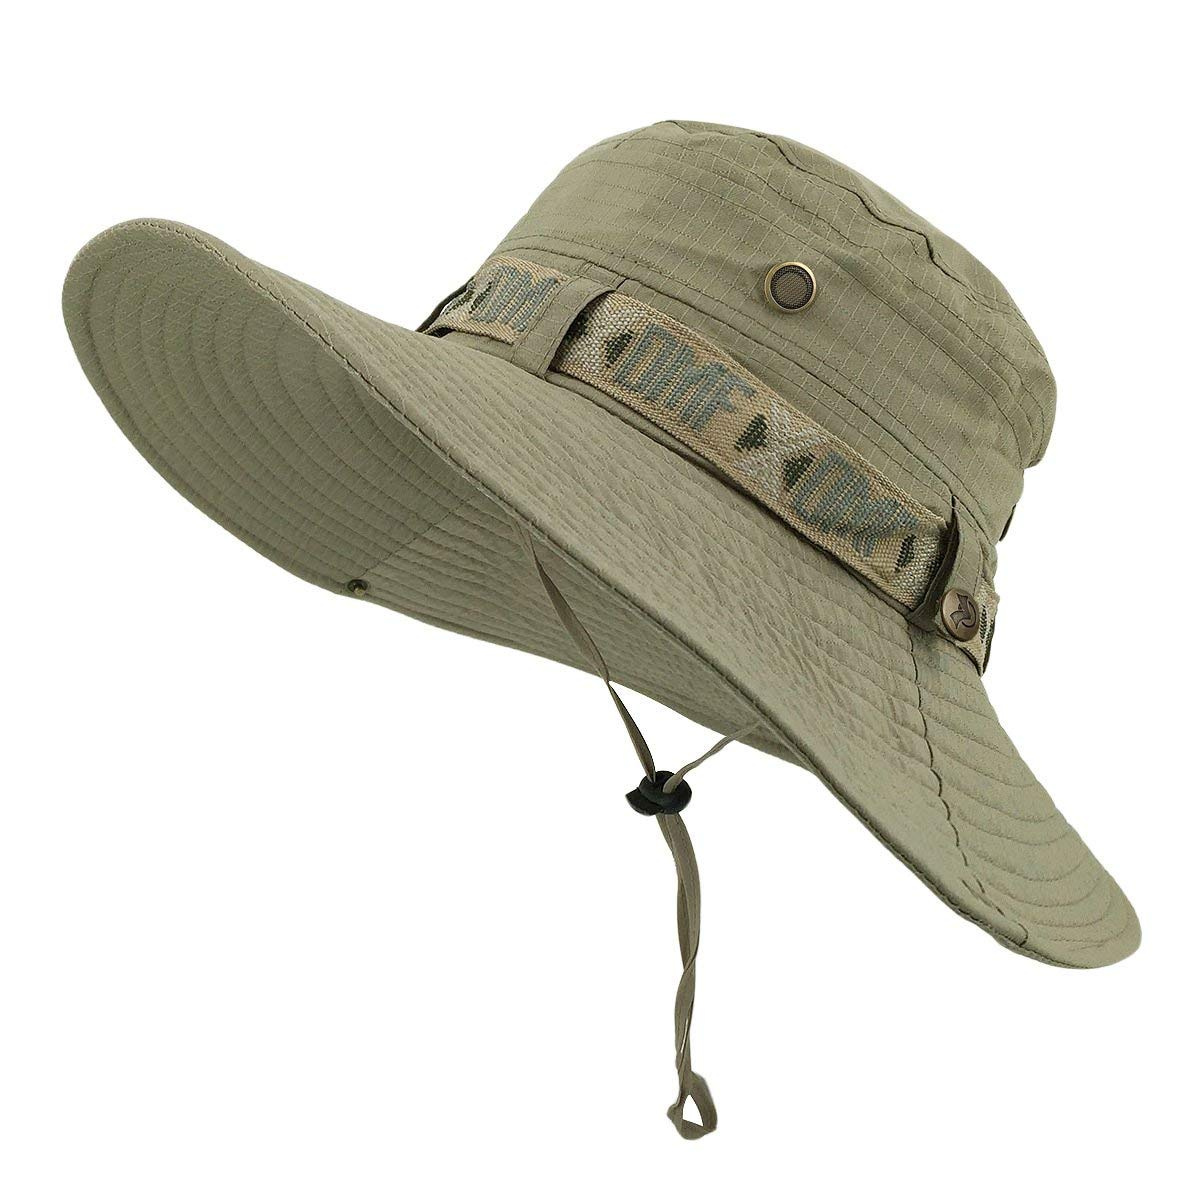 b001e6f8f51d9 Boonie Hats Sports  Buy Online from Fishpond.co.nz